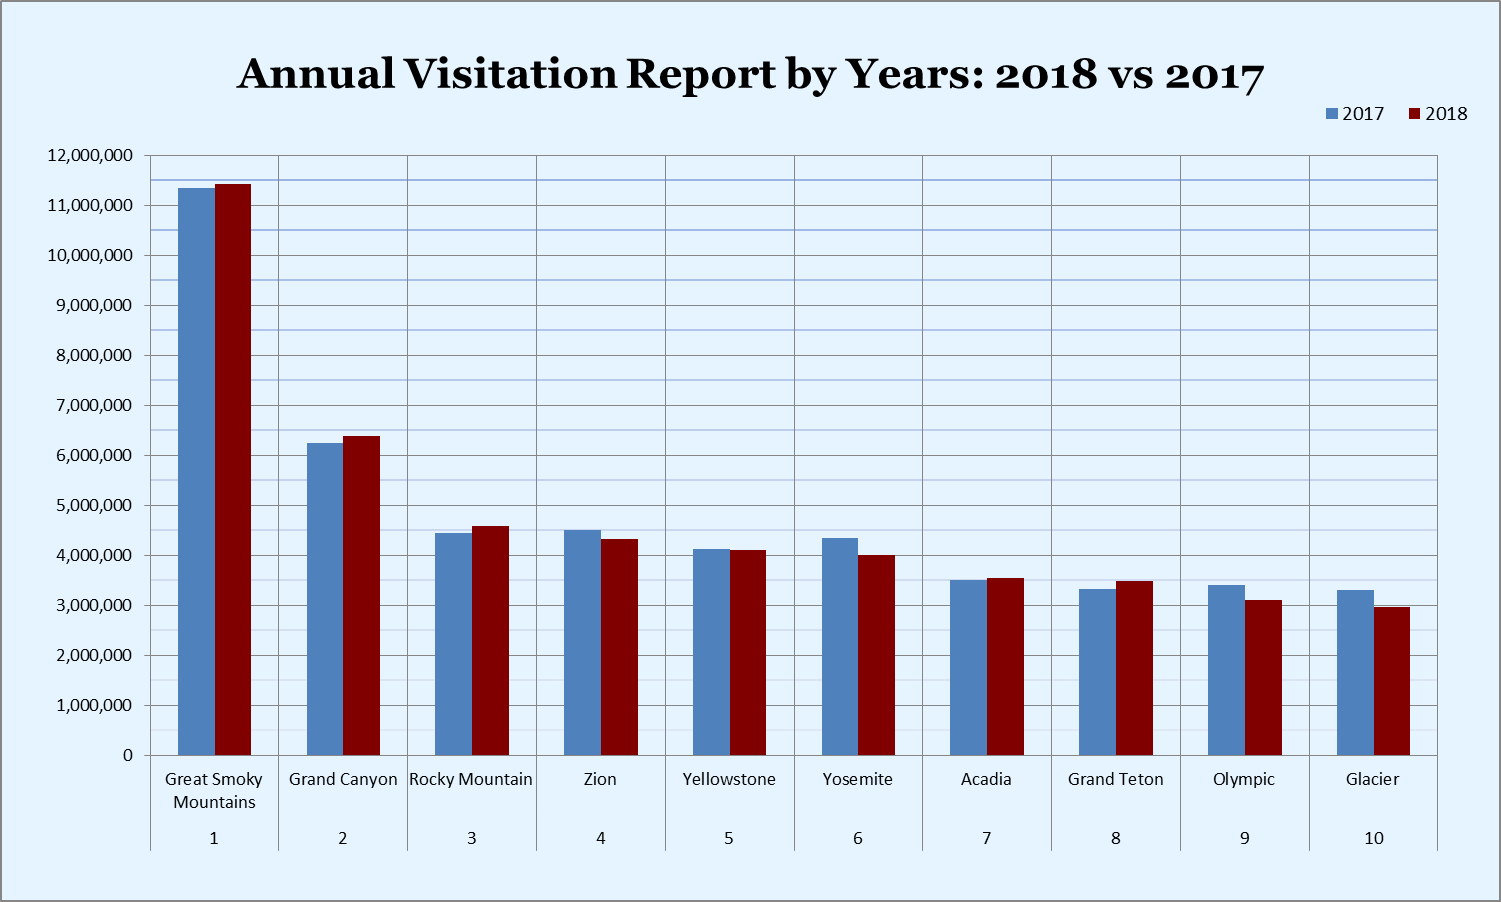 Annual Visitation Report by Years: 2018 vs 2017